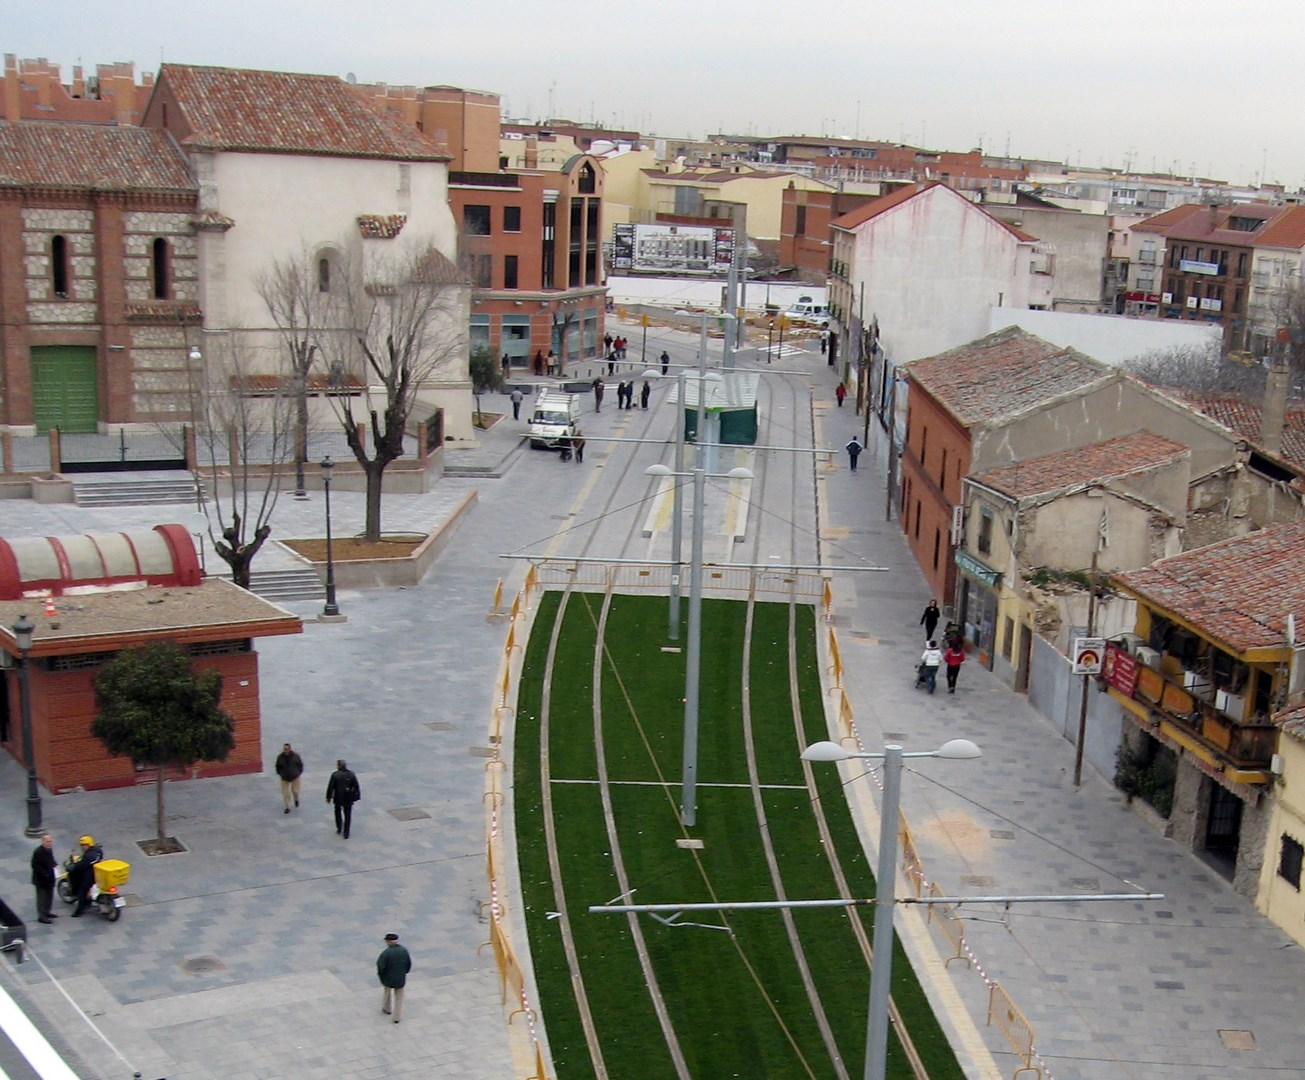 Real street, now converted into a pedestrian street